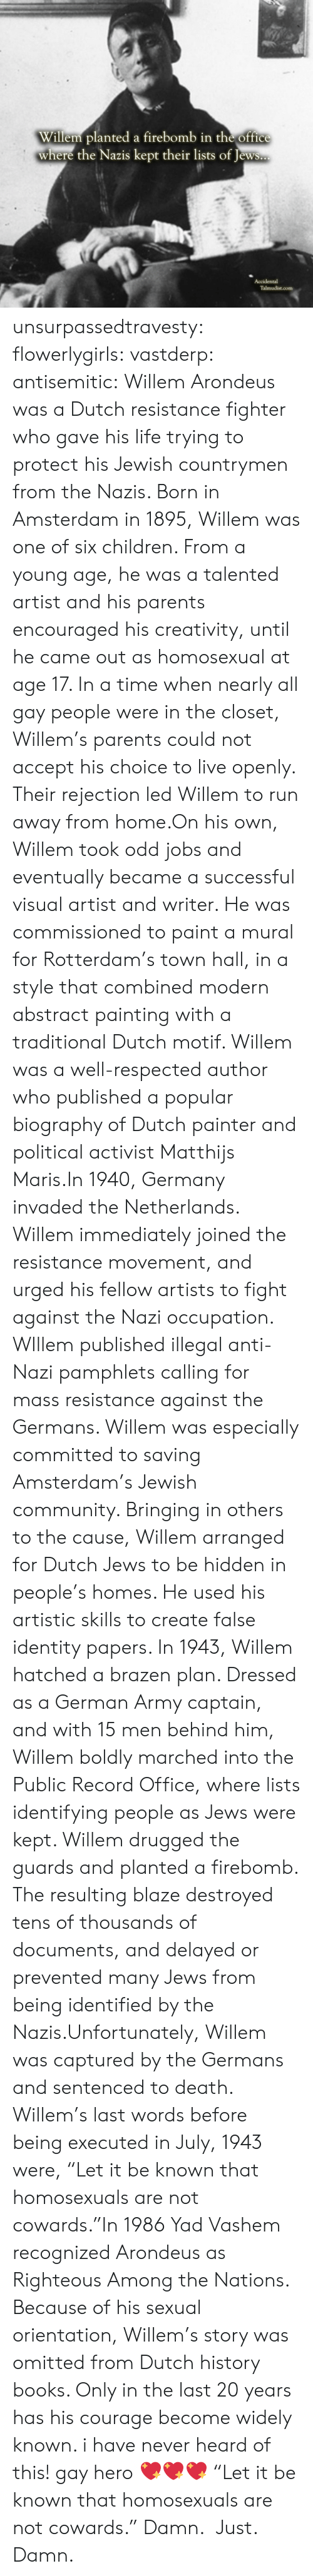 "drugged: Willem planted a firebomb in the office  where the Nazis kept their lists of Jews..  Accidental  Talmudist.com unsurpassedtravesty:  flowerlygirls:  vastderp:  antisemitic:   Willem Arondeus was a Dutch resistance fighter who gave his life trying to protect his Jewish countrymen from the Nazis. Born in Amsterdam in 1895, Willem was one of six children. From a young age, he was a talented artist and his parents encouraged his creativity, until he came out as homosexual at age 17. In a time when nearly all gay people were in the closet, Willem's parents could not accept his choice to live openly. Their rejection led Willem to run away from home.On his own, Willem took odd jobs and eventually became a successful visual artist and writer. He was commissioned to paint a mural for Rotterdam's town hall, in a style that combined modern abstract painting with a traditional Dutch motif. Willem was a well-respected author who published a popular biography of Dutch painter and political activist Matthijs Maris.In 1940, Germany invaded the Netherlands. Willem immediately joined the resistance movement, and urged his fellow artists to fight against the Nazi occupation. WIllem published illegal anti-Nazi pamphlets calling for mass resistance against the Germans. Willem was especially committed to saving Amsterdam's Jewish community. Bringing in others to the cause, Willem arranged for Dutch Jews to be hidden in people's homes. He used his artistic skills to create false identity papers. In 1943, Willem hatched a brazen plan. Dressed as a German Army captain, and with 15 men behind him, Willem boldly marched into the Public Record Office, where lists identifying people as Jews were kept. Willem drugged the guards and planted a firebomb. The resulting blaze destroyed tens of thousands of documents, and delayed or prevented many Jews from being identified by the Nazis.Unfortunately, Willem was captured by the Germans and sentenced to death. Willem's last words before being executed in July, 1943 were, ""Let it be known that homosexuals are not cowards.""In 1986 Yad Vashem recognized Arondeus as Righteous Among the Nations. Because of his sexual orientation, Willem's story was omitted from Dutch history books. Only in the last 20 years has his courage become widely known.     i have never heard of this!   gay hero 💖💖💖  ""Let it be known that homosexuals are not cowards."" Damn.  Just. Damn."